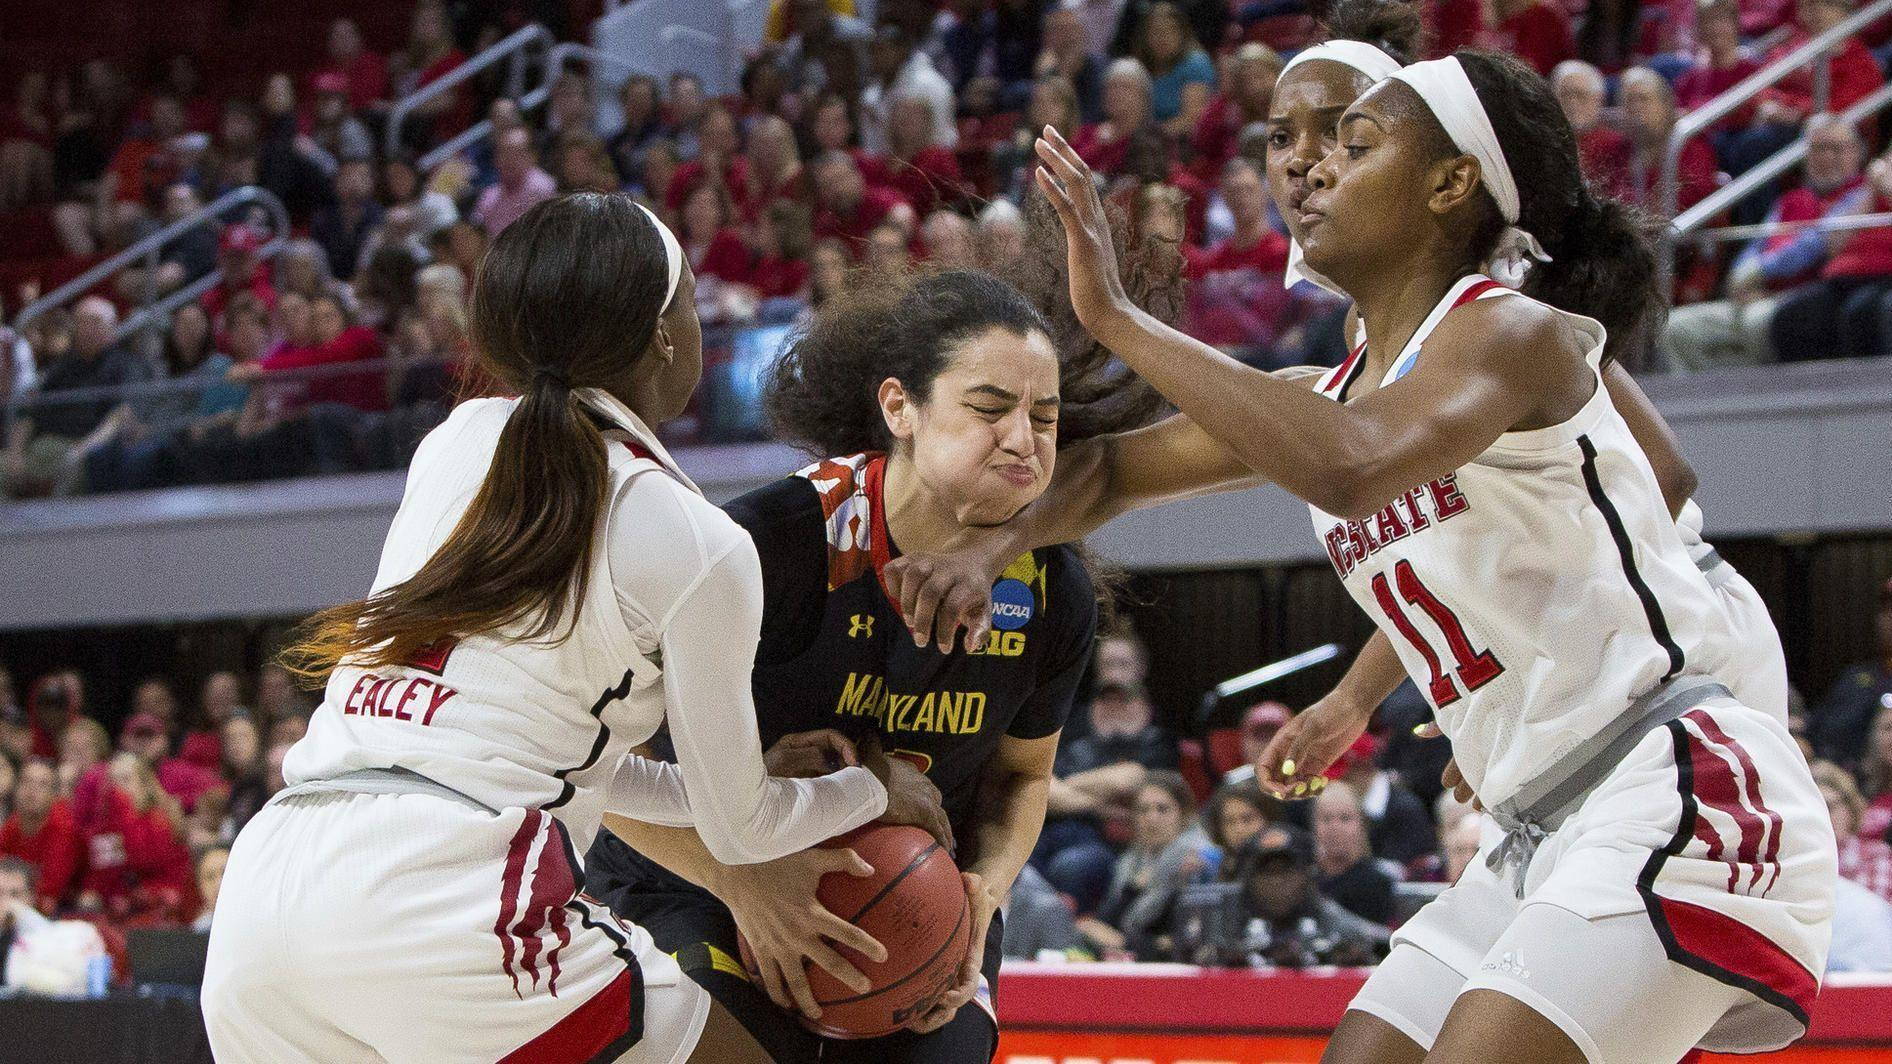 Bs-sp-maryland-nc-state-ncaa-women-tournament-0319